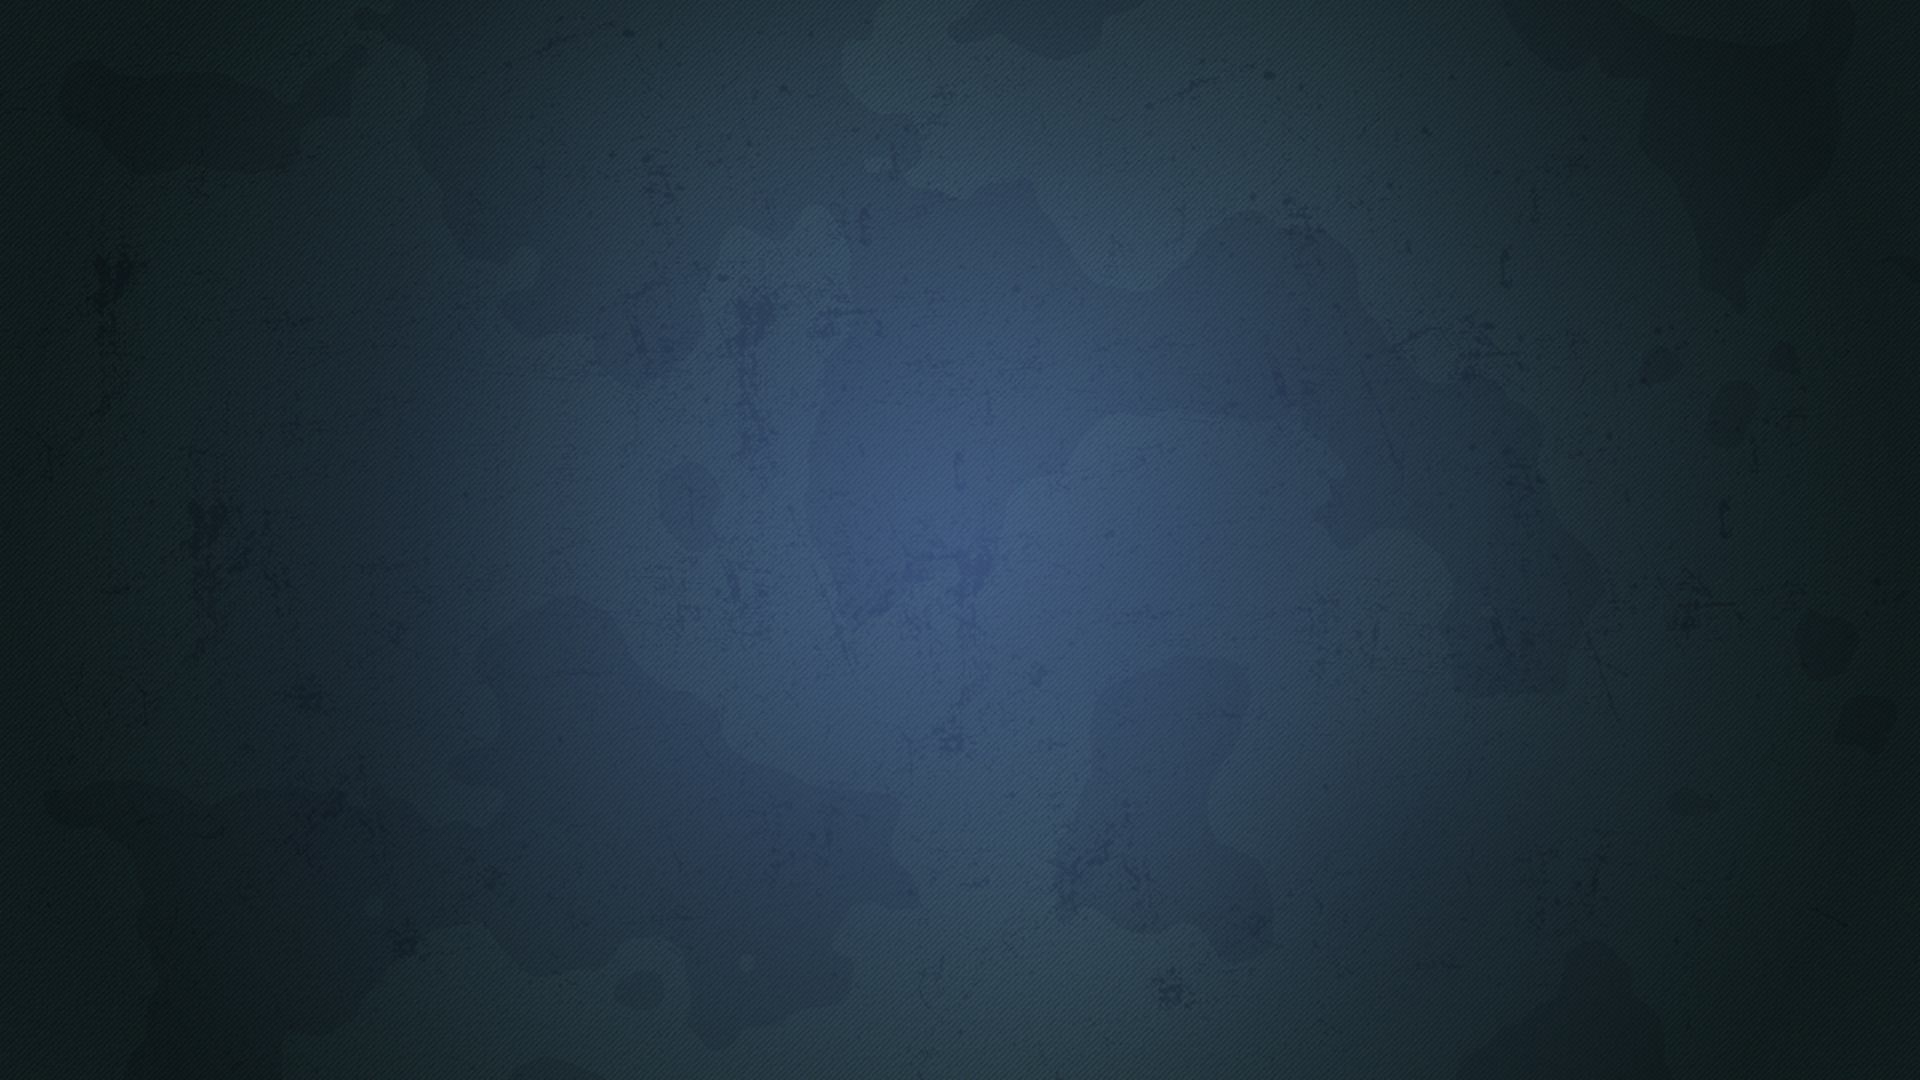 High Res Grunge Black Wallpaper